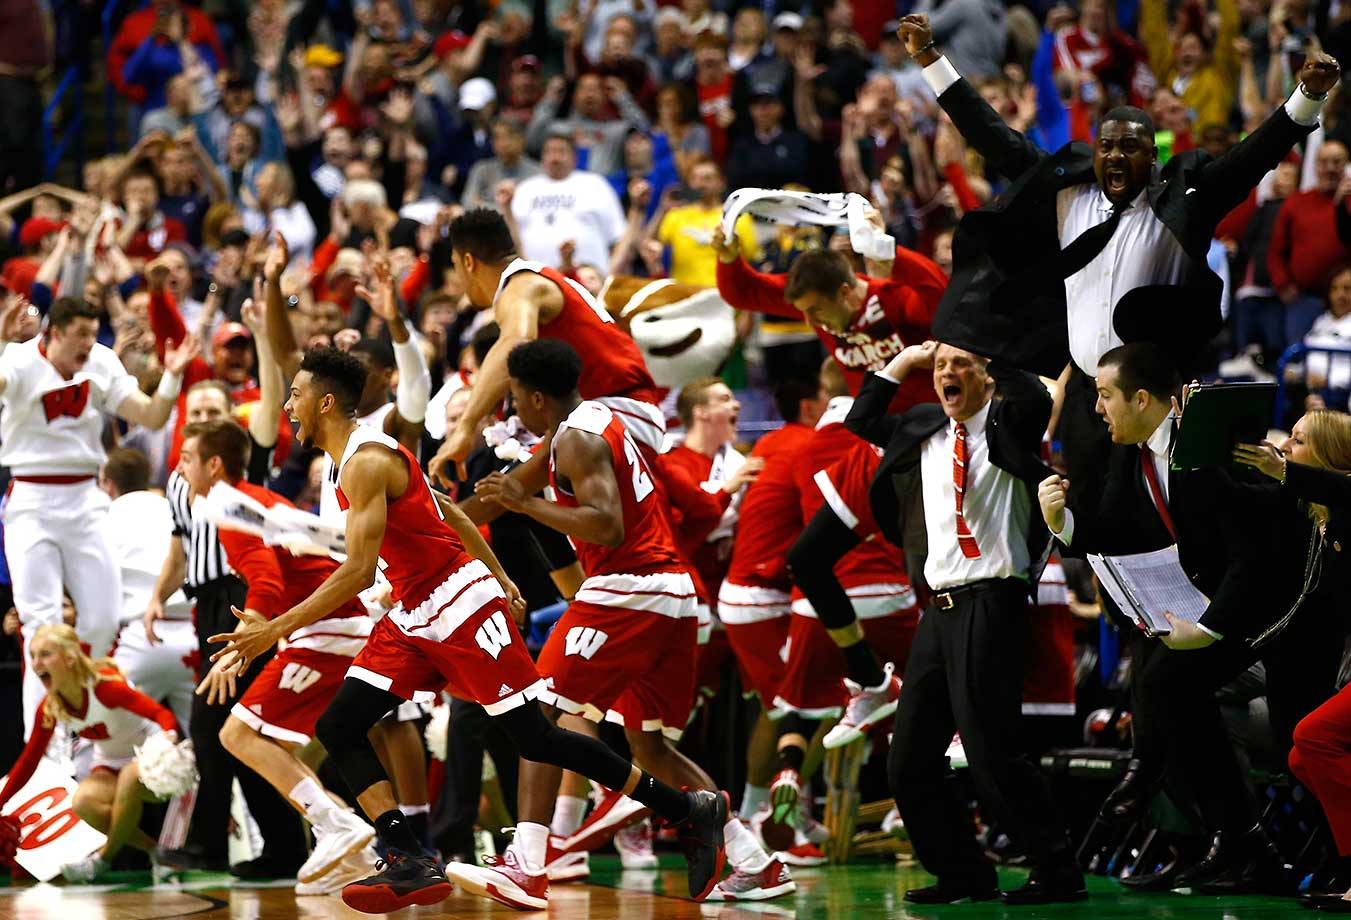 The Wisconsin bench reacts after Bronson Koenig's buzzer beater sent the Badgers to the Sweet 16.